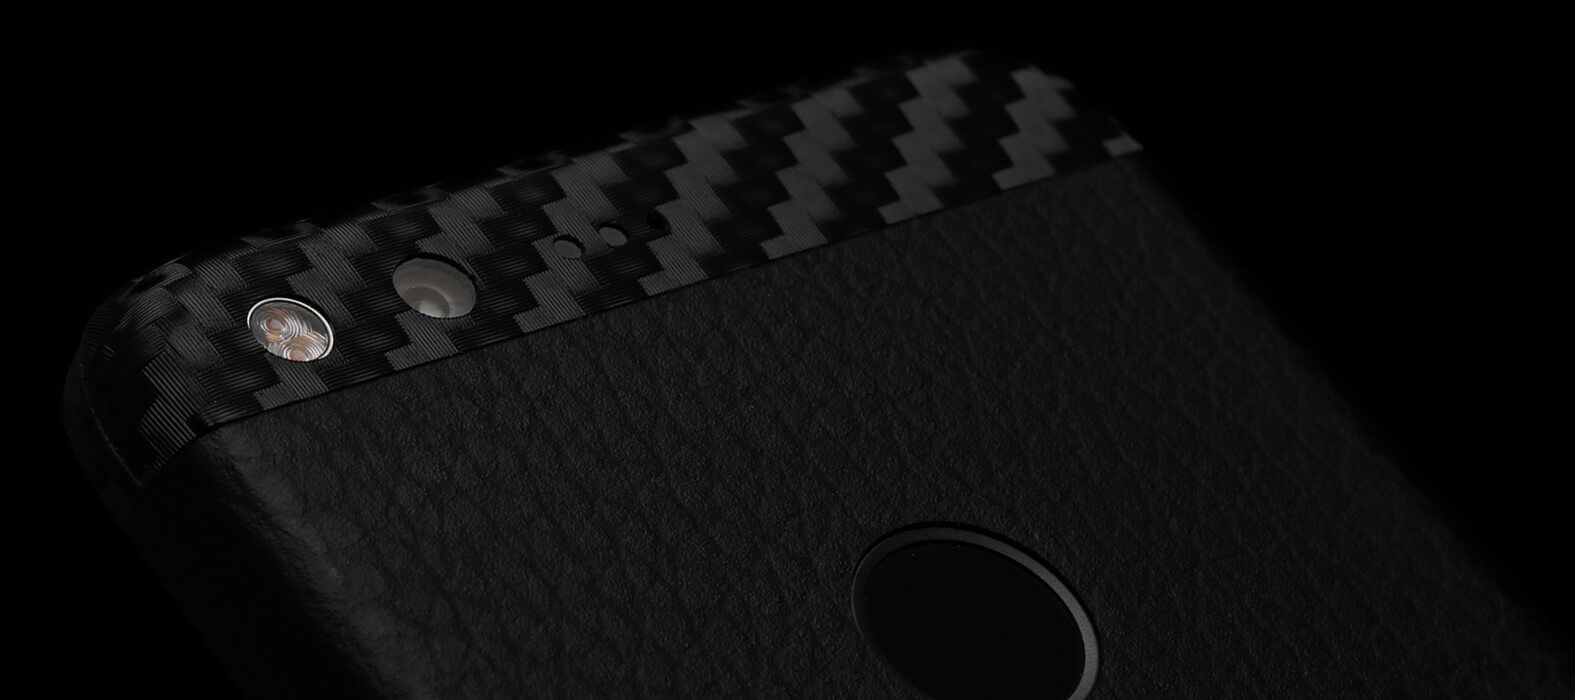 Pixel XL Wraps, Skins & Decals - Black Leather